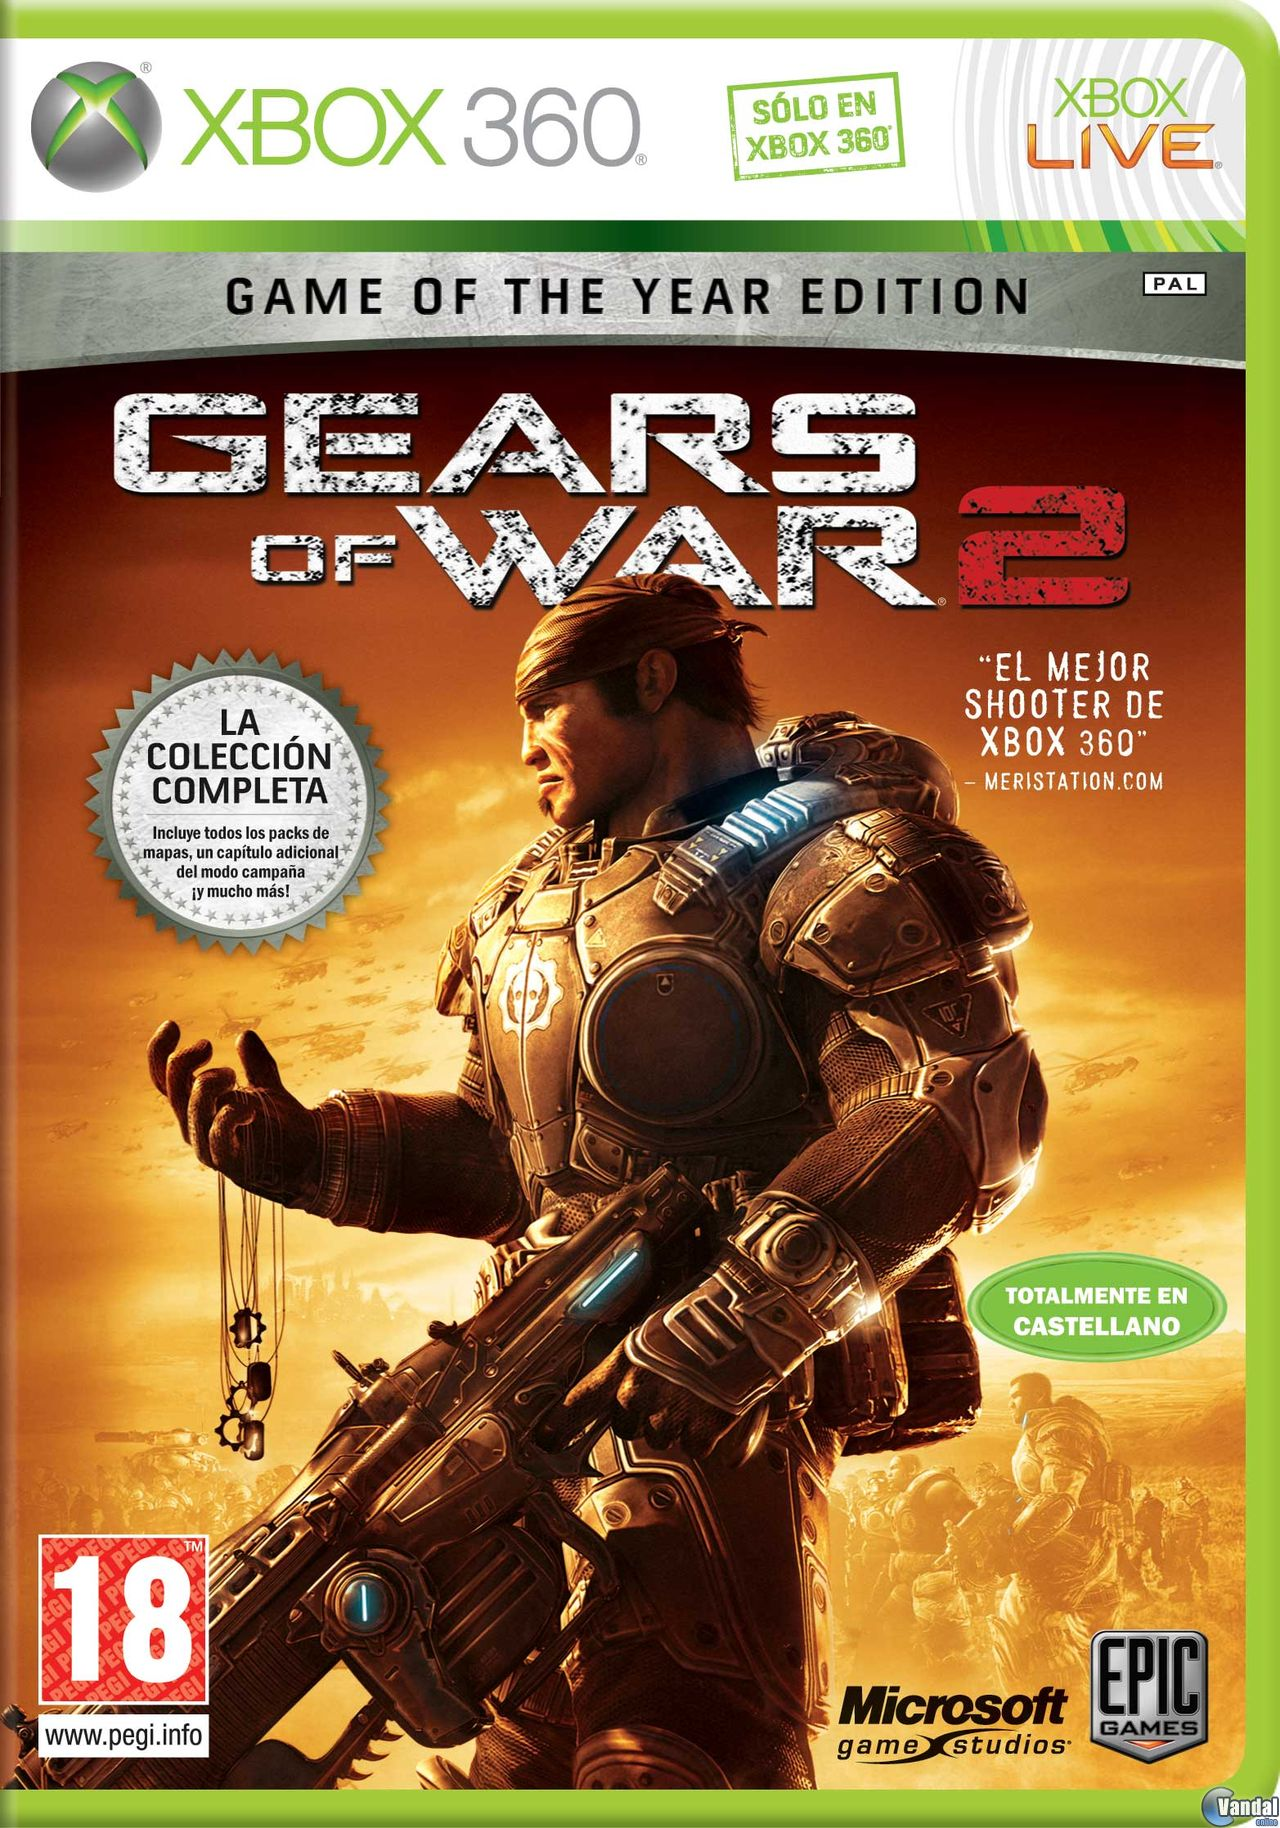 10 Most Popular Xbox Games : Free download top xbox games hmv programs backupty